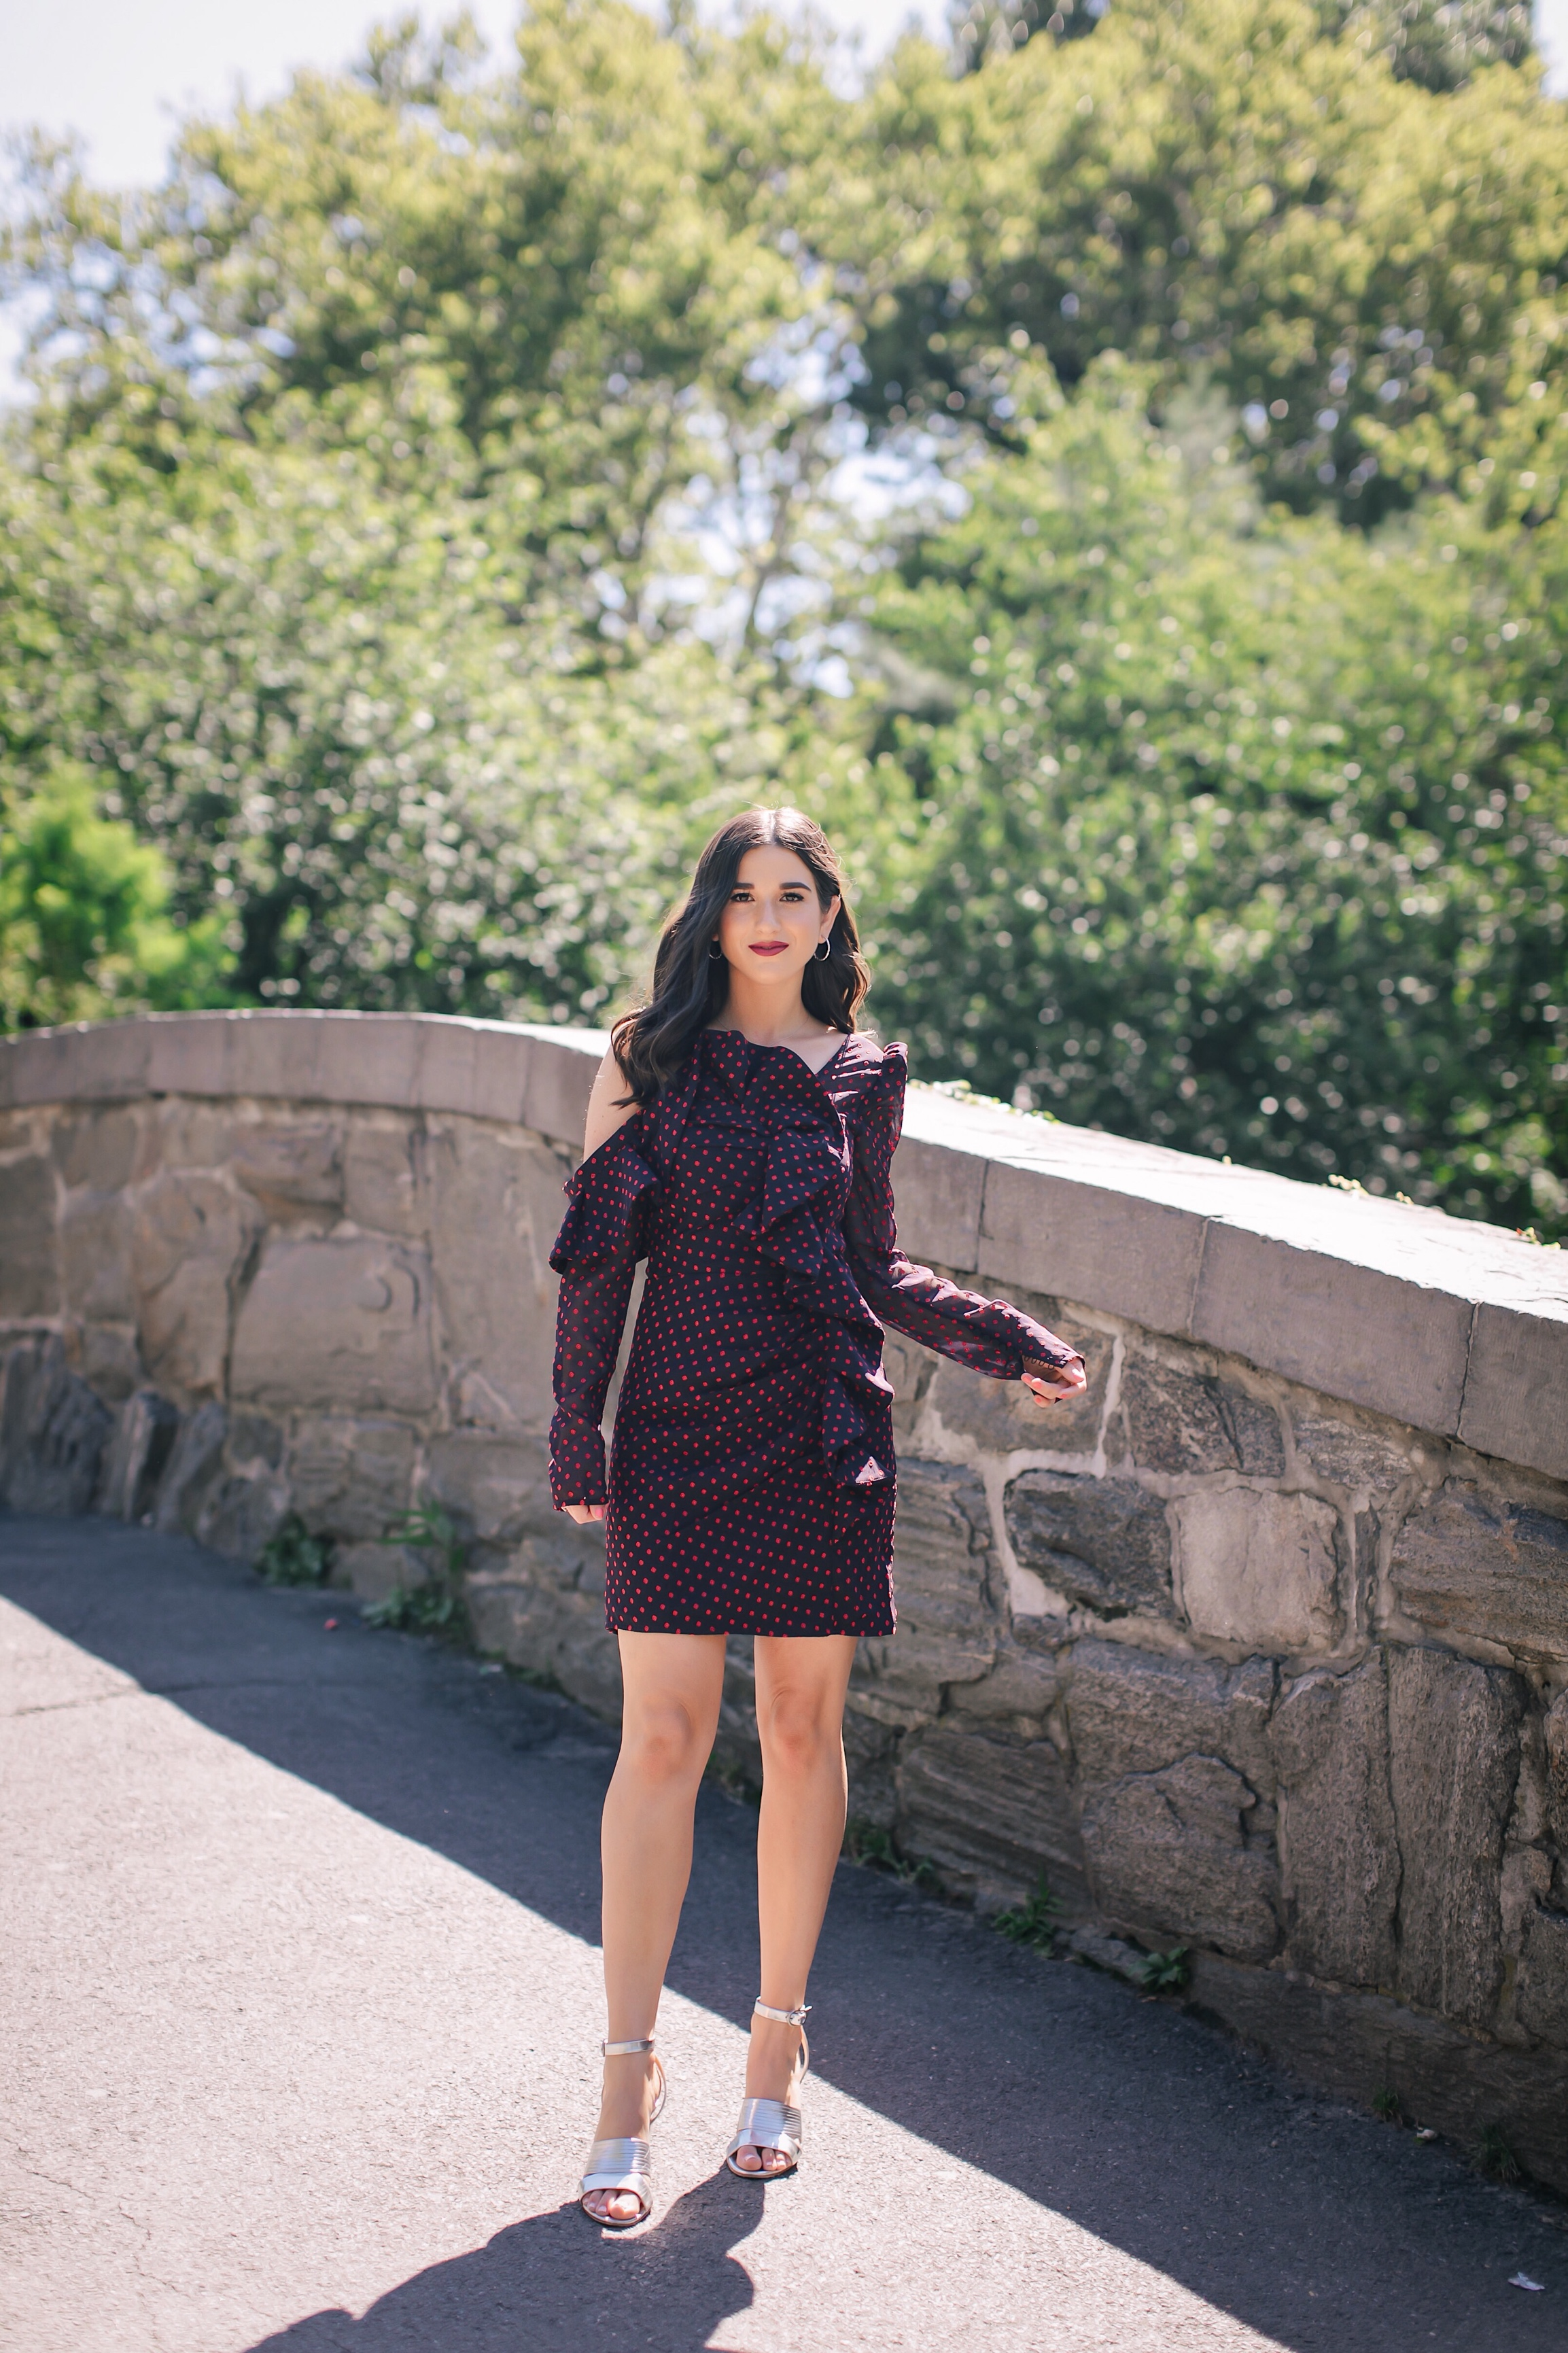 Aging Out Cold Shoulder Polka Dot Dress Silver Heels Esther Santer Fashion Blog NYC Street Style Blogger Outfit OOTD Trendy Shopping Girl What How To Wear Industry Diamond Jewelry Self Portait Central Park Photoshoot Gapstow Bridge Red Lip Summer Love.JPG